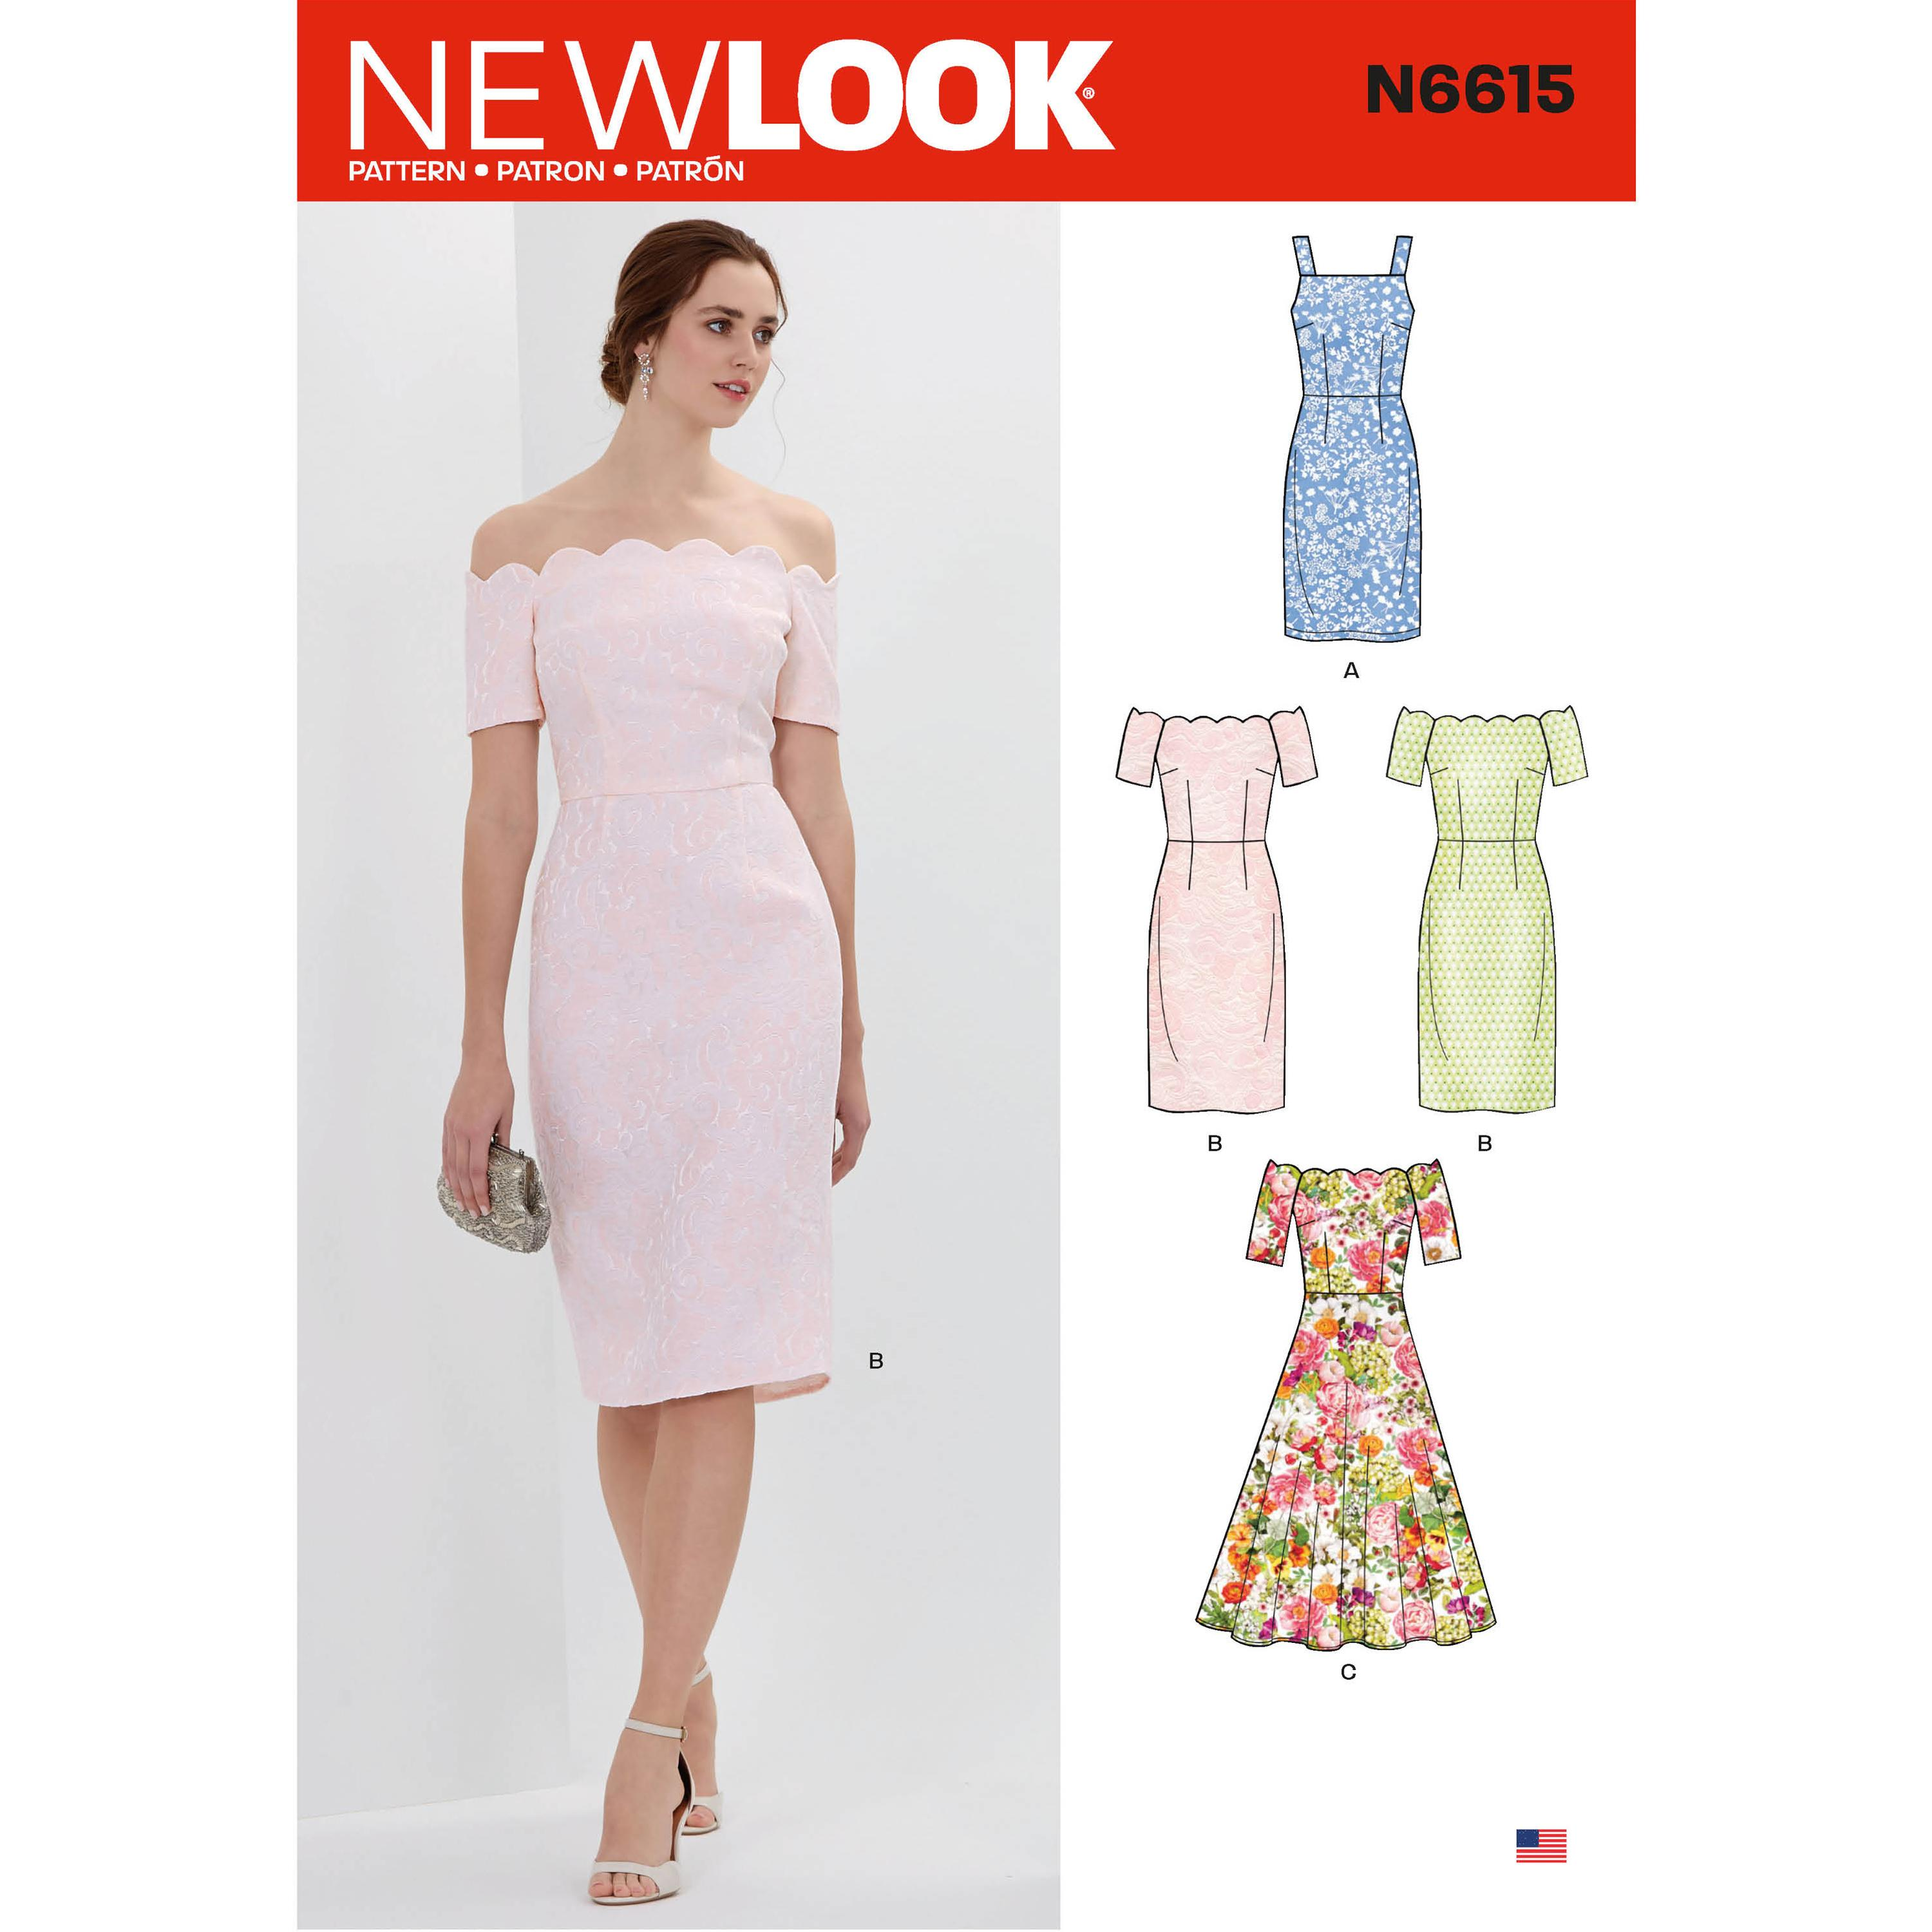 NewLook Sewing Pattern N6615 Misses' Dresses